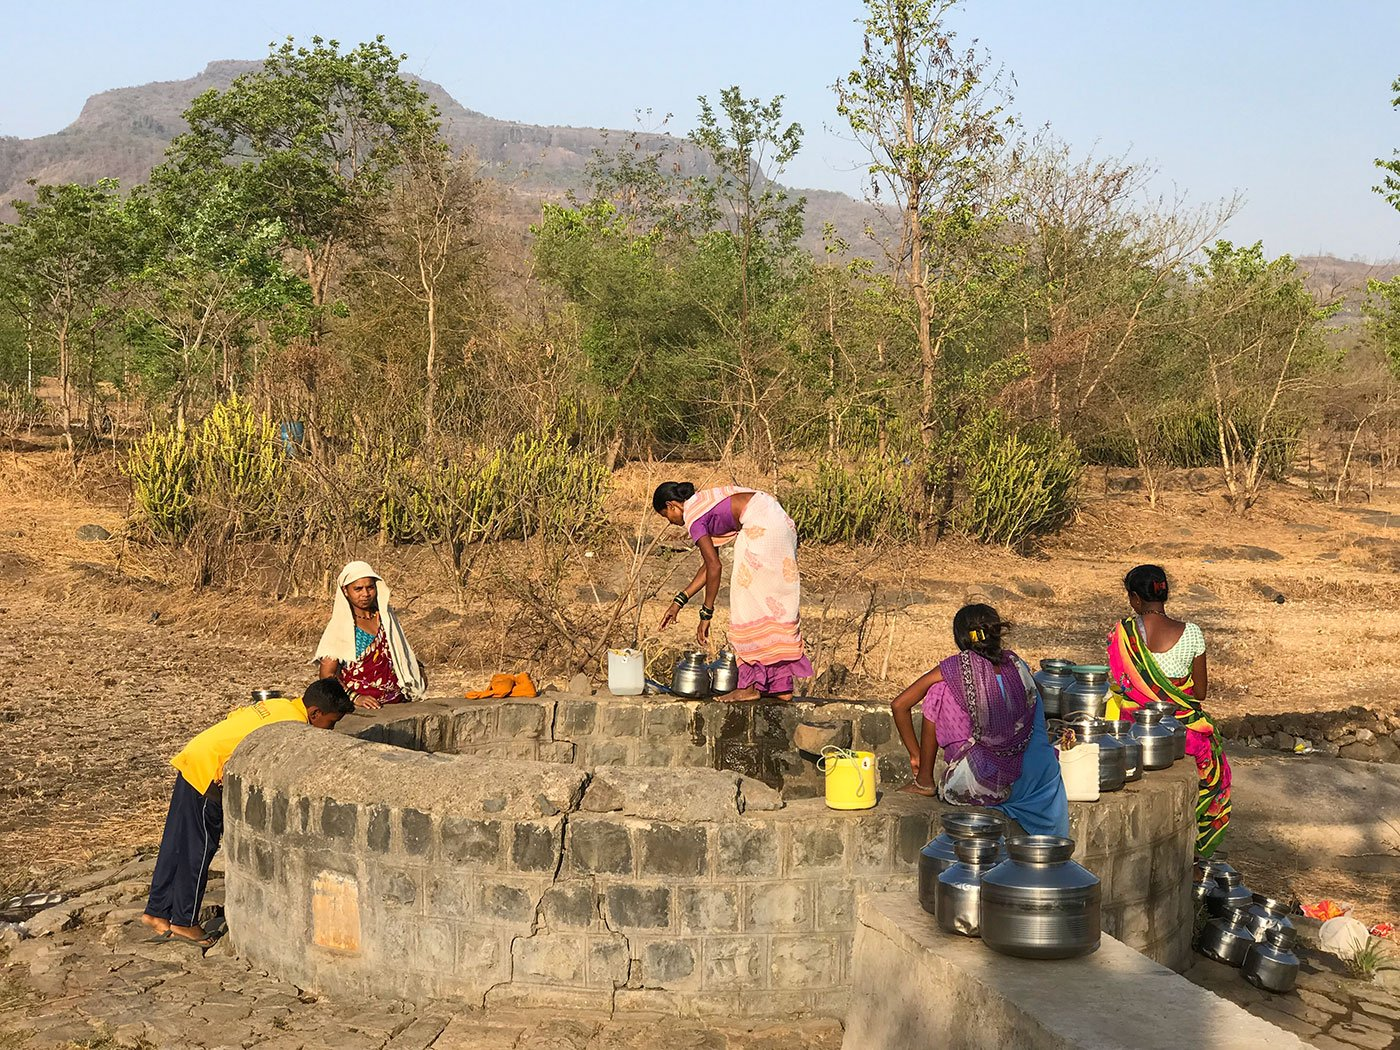 Women gathered near the well i.e 3km away from Galtare to collect water